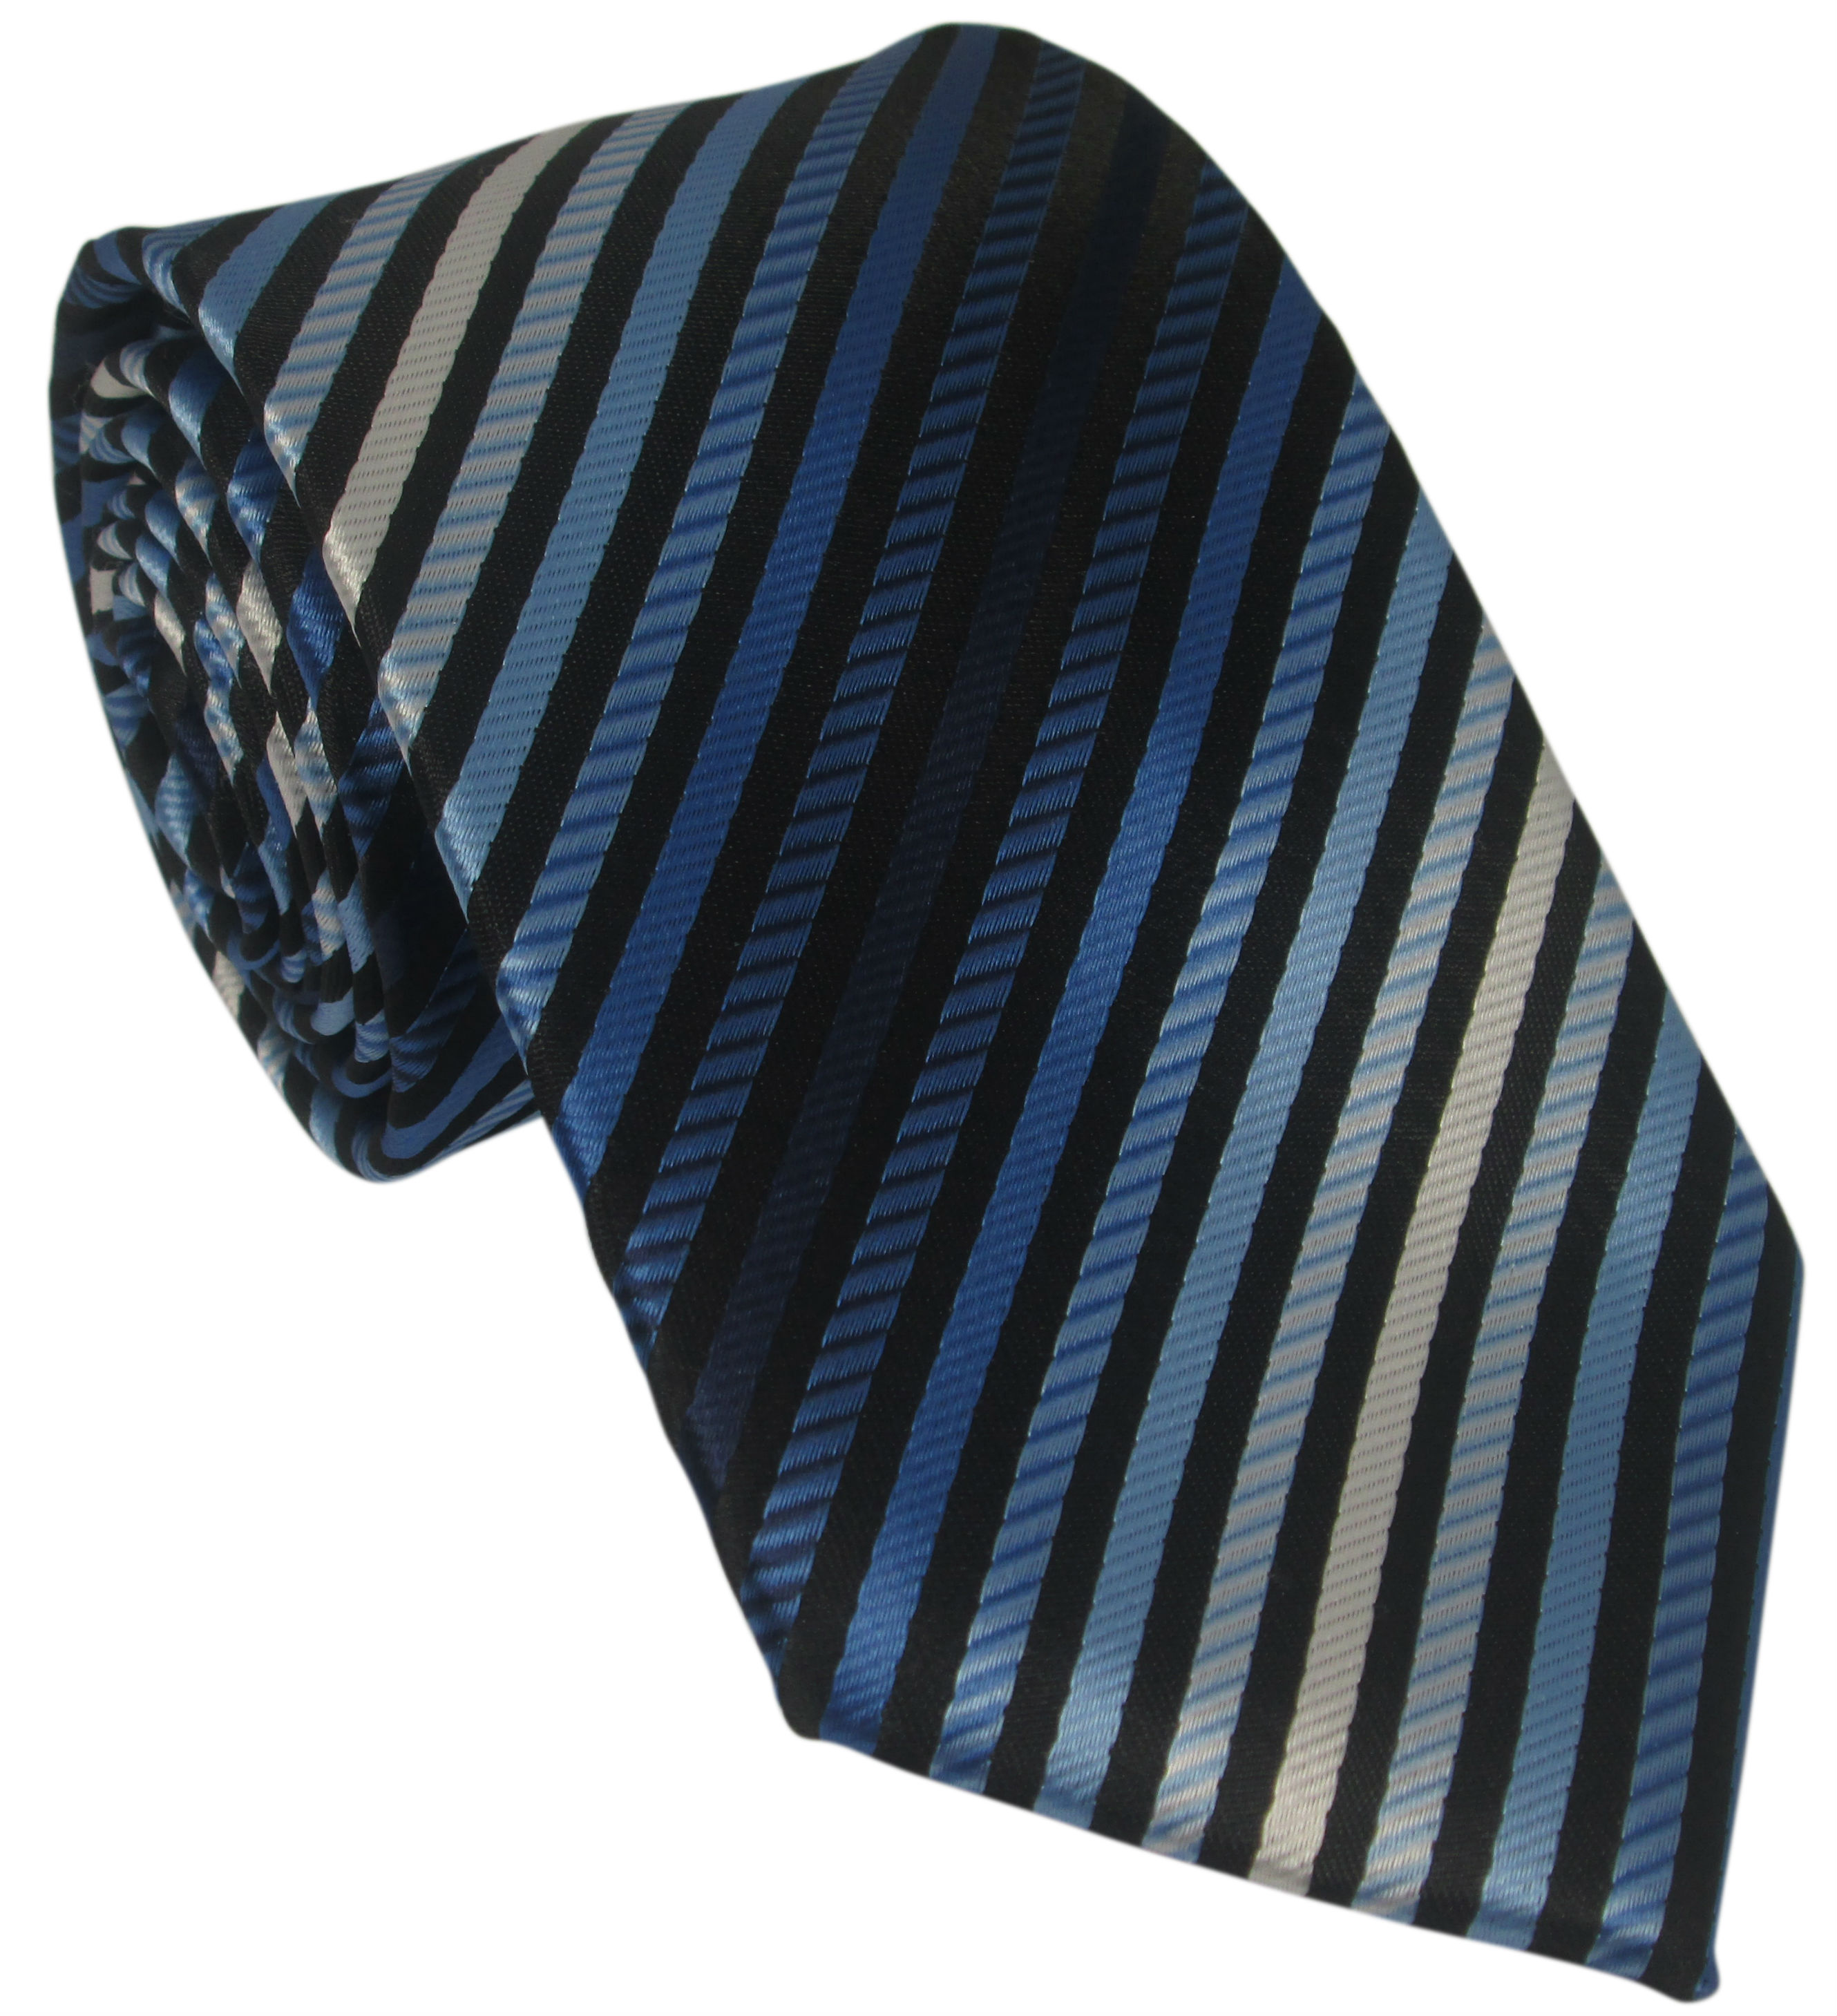 Blue Black and White Striped Silk Tie